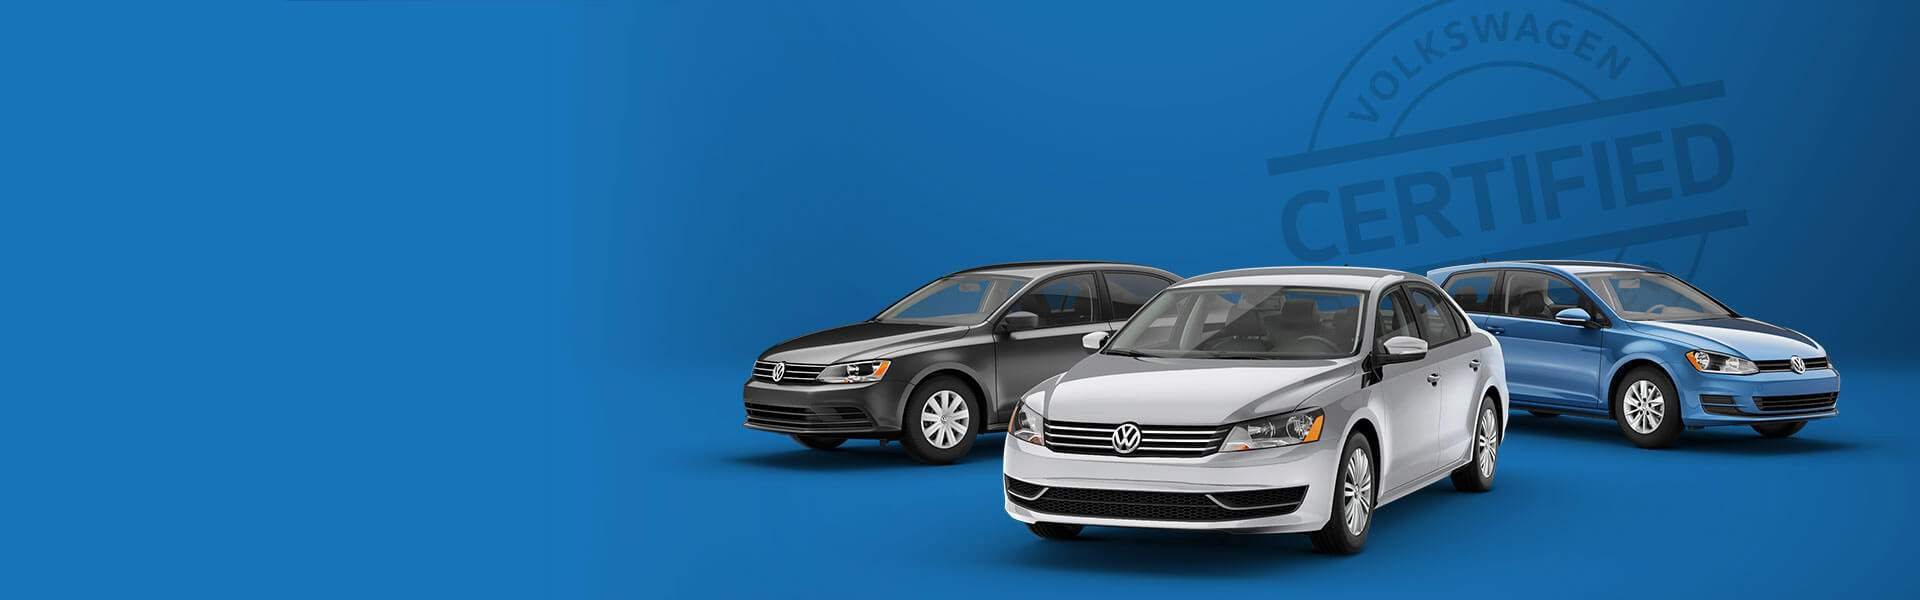 Volkswagen Certified Pre-Owned in Brunswick, OH